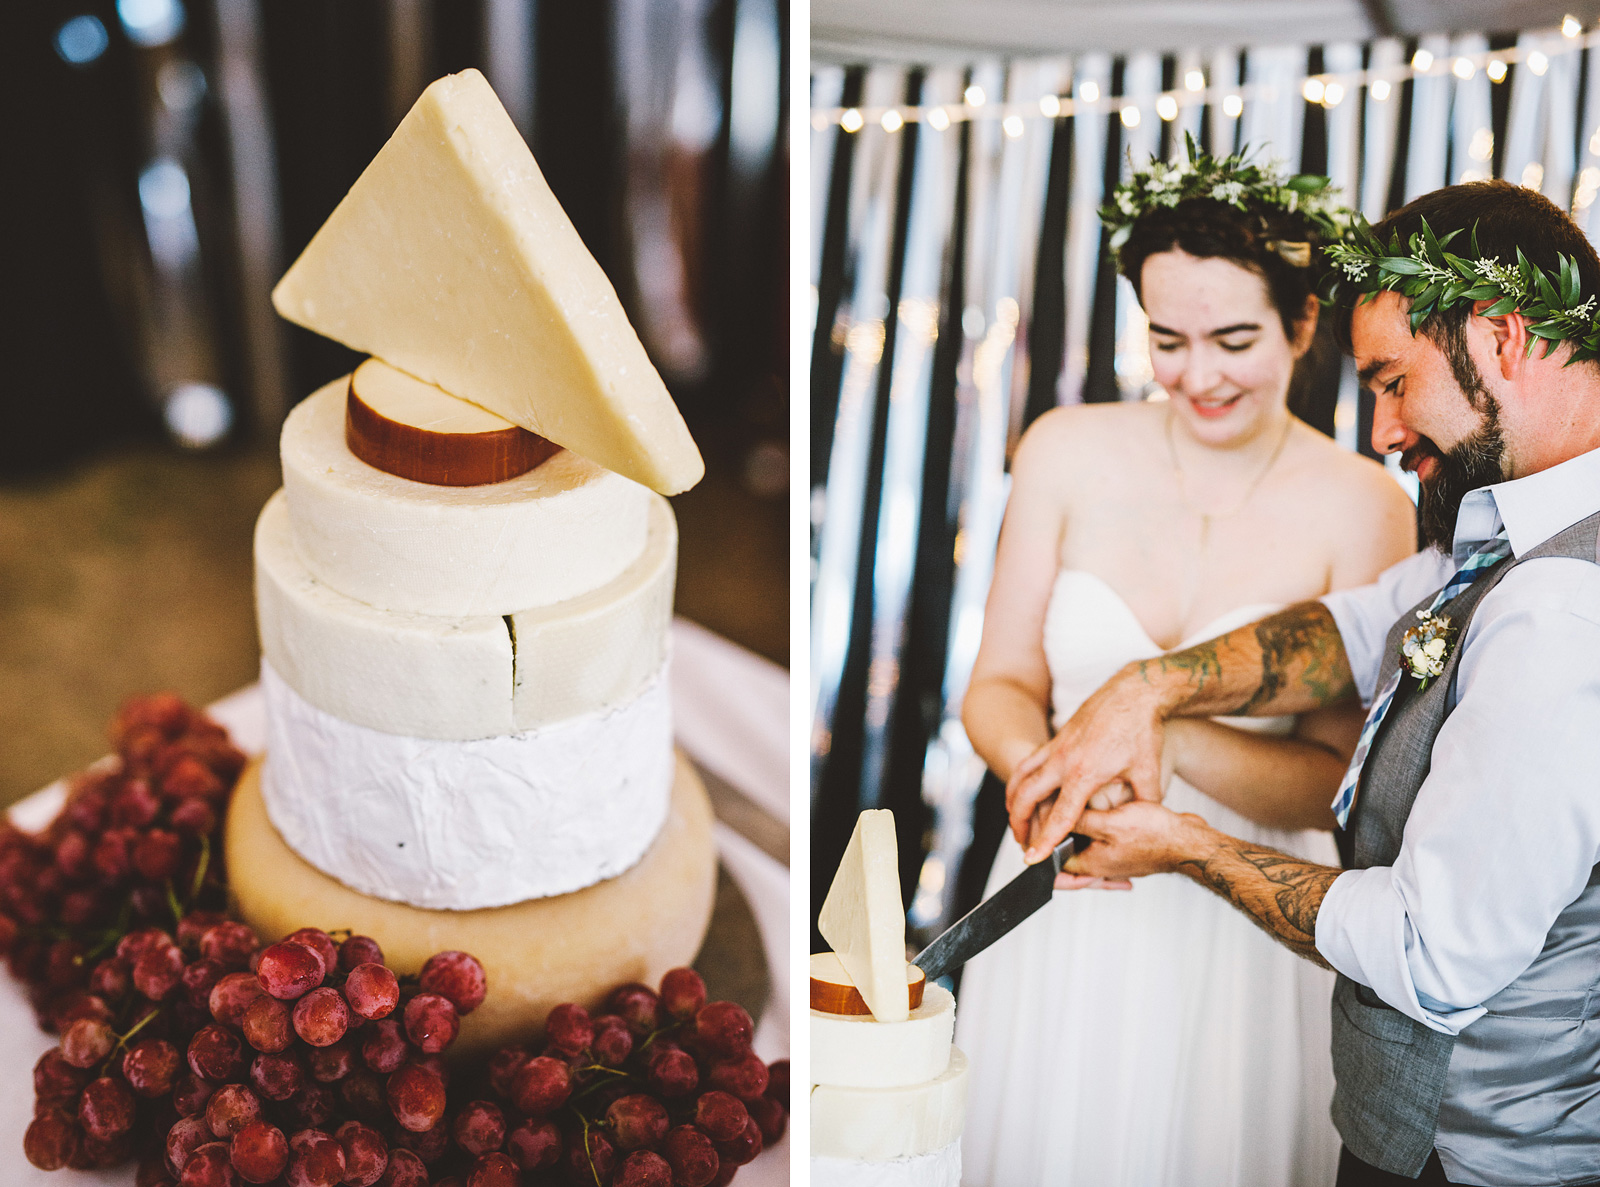 Wedding cheese cake tower | SouWester Lodge Wedding